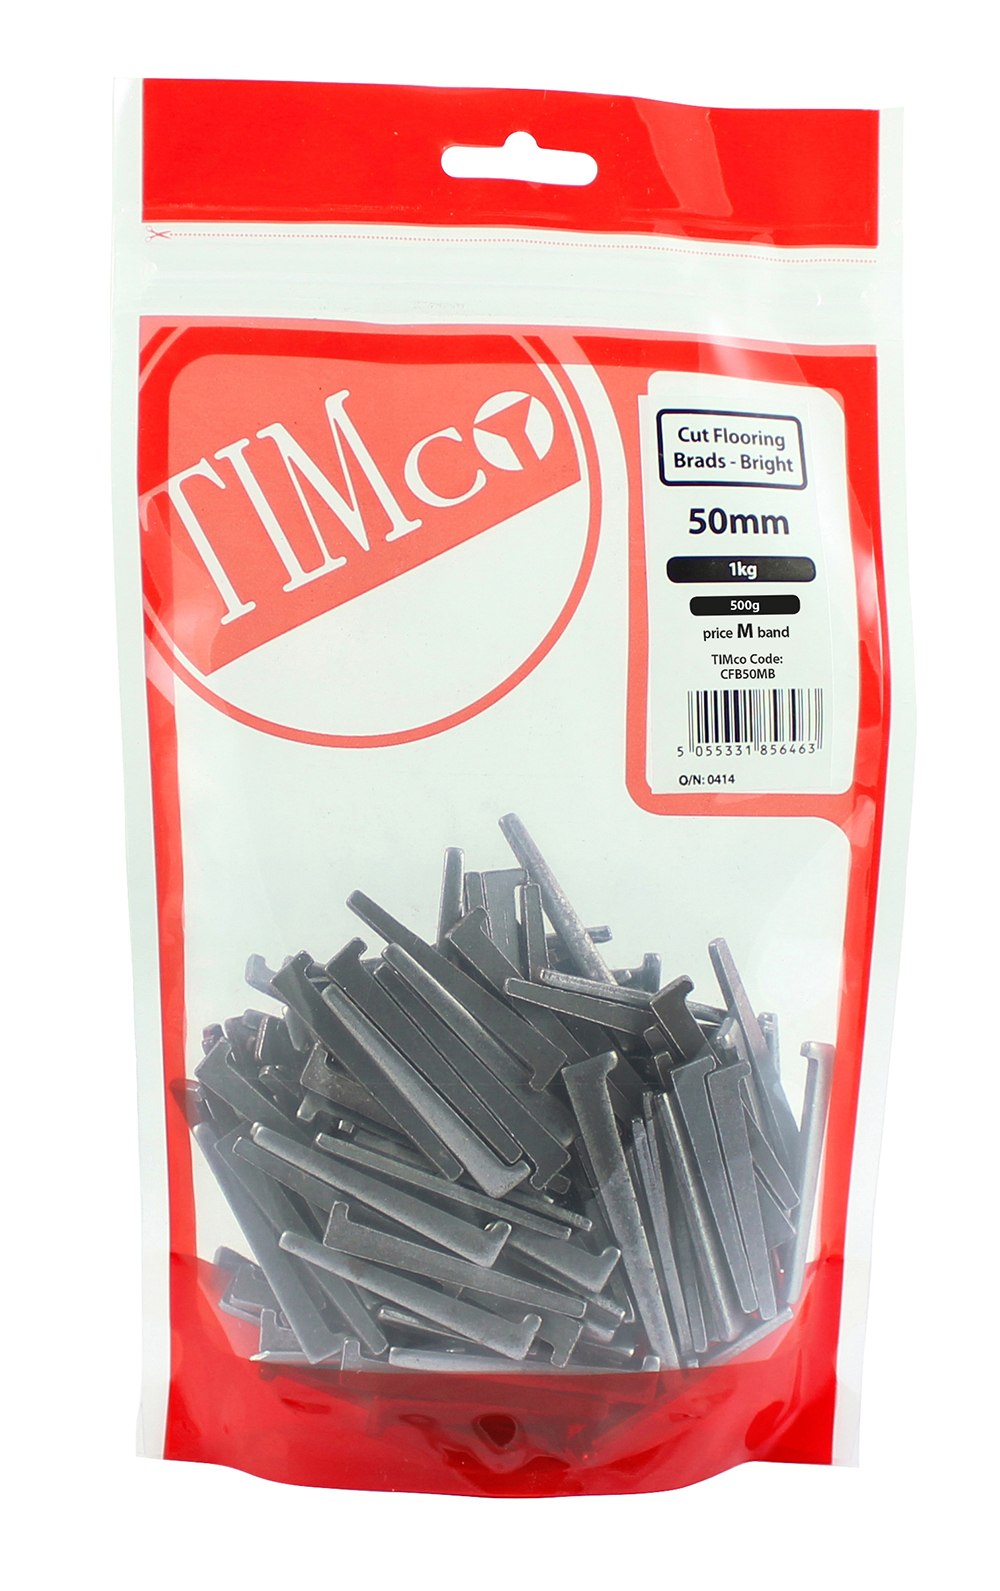 TIMco 50mm Cut Flooring Brad - Bright 500g Bag